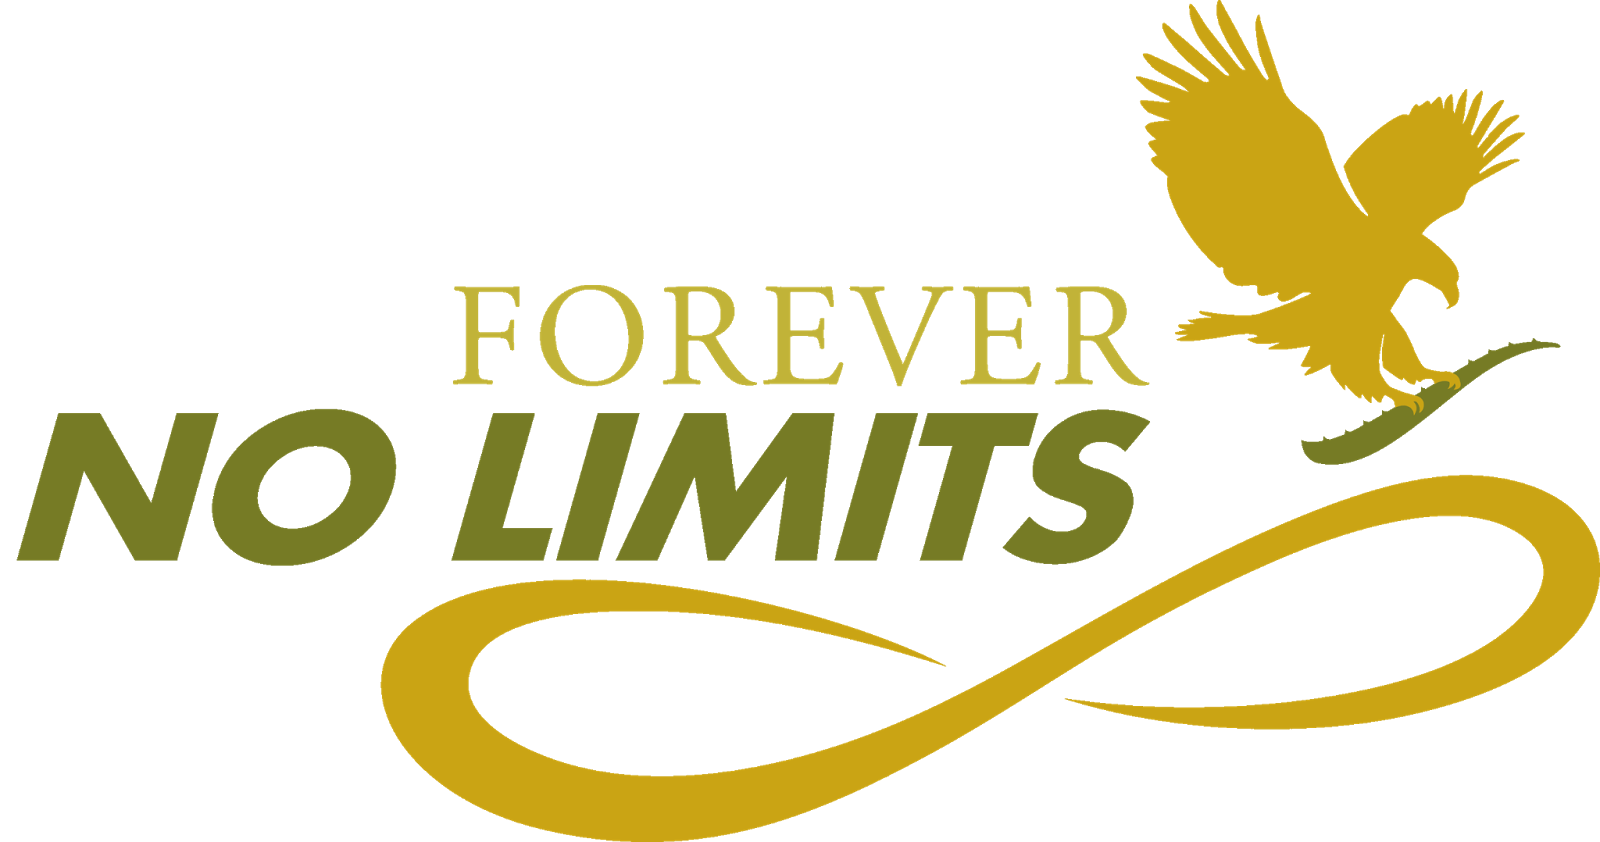 Usage: Forever and for ever can both be used to say that something is without end. For all other meanings, forever is the preferred form.